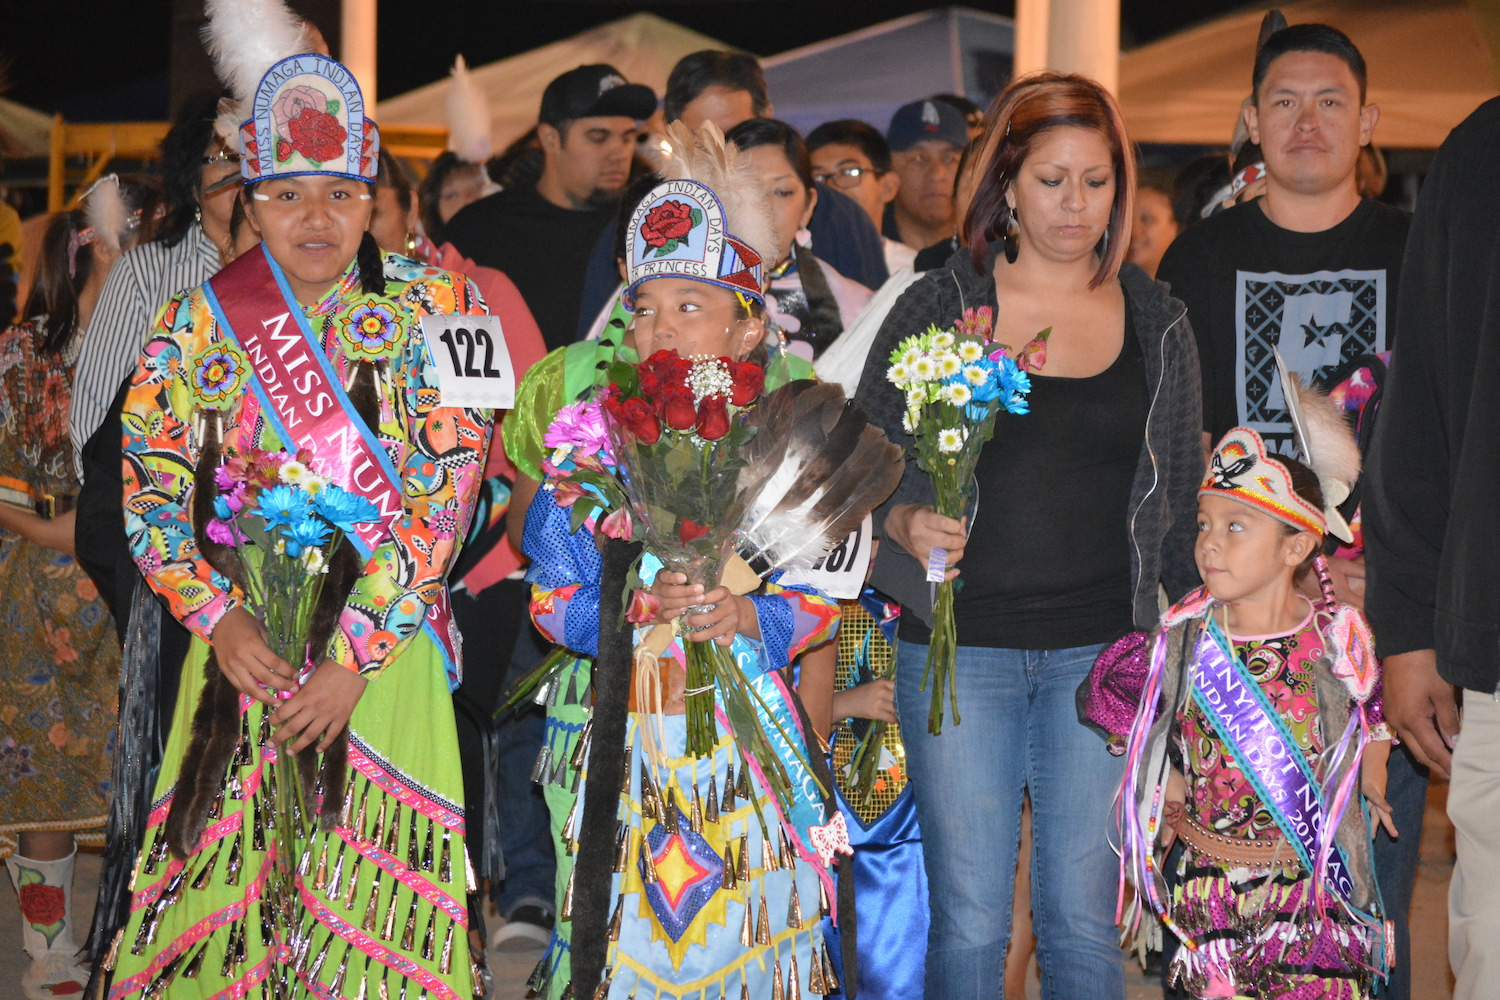 Reno-Sparks Indian Colony dancers to perform for National Guard